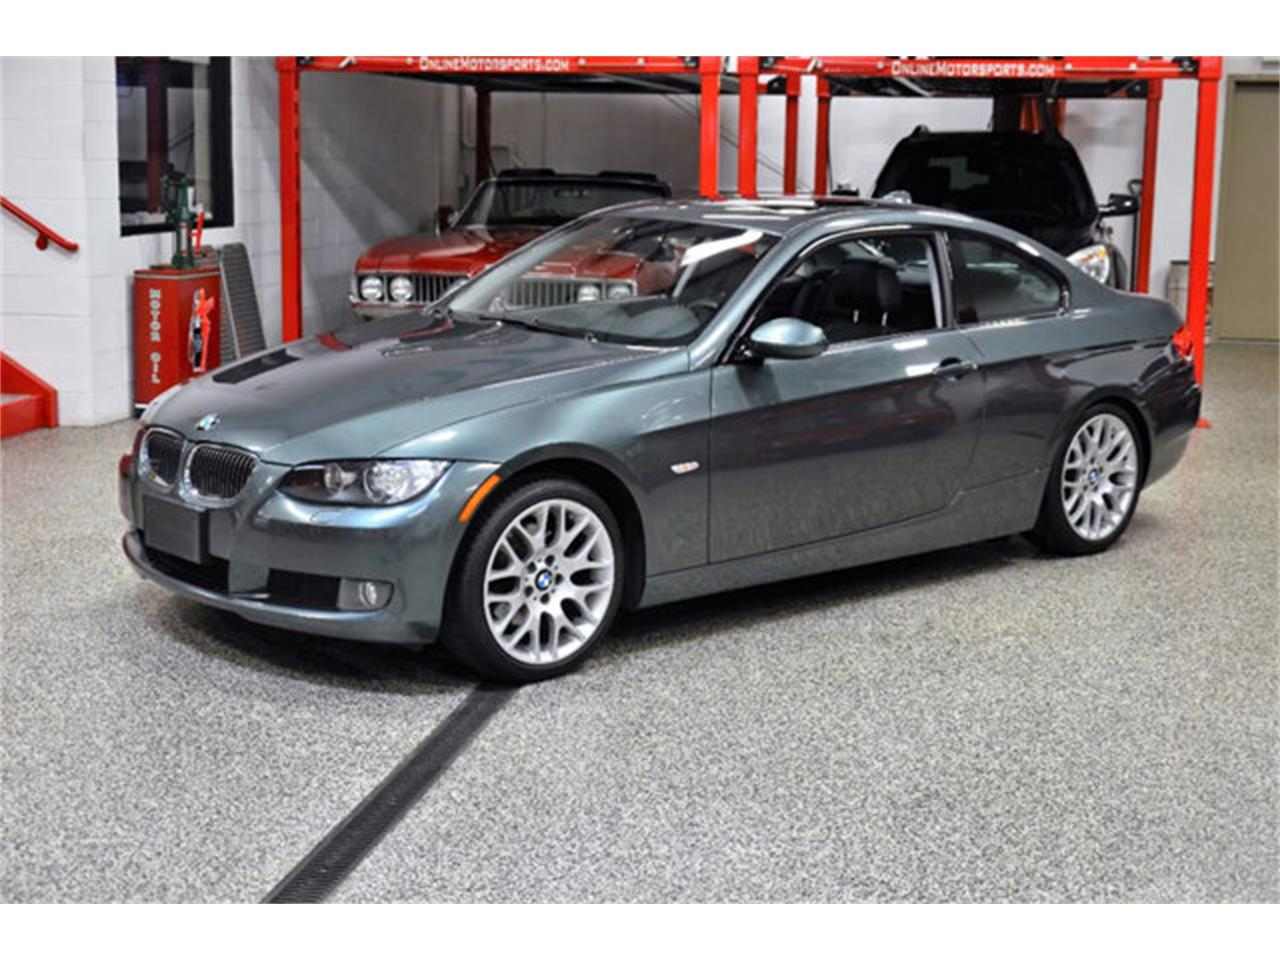 for sale 2009 bmw 3 series in plainfield, illinois cars - plainfield, il at geebo